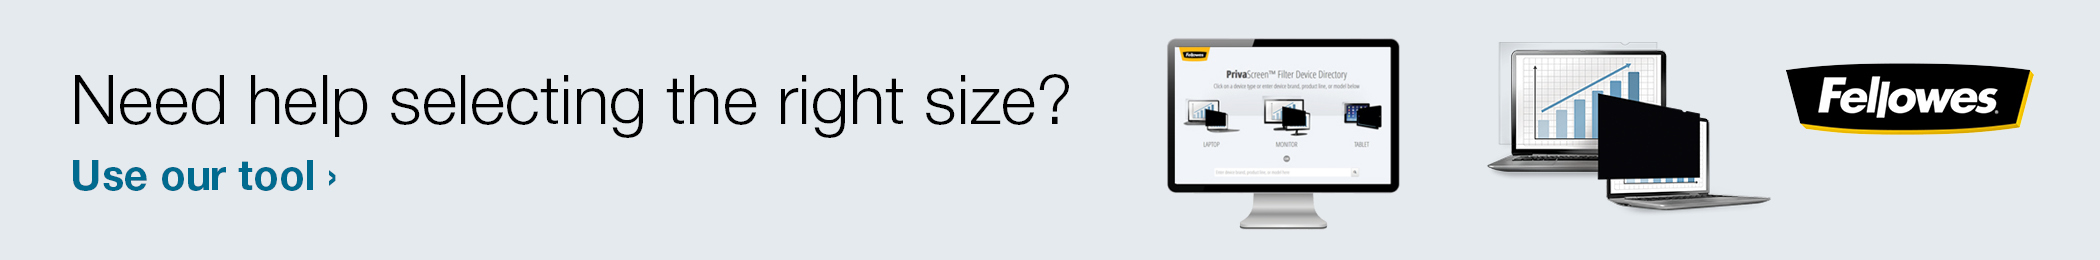 Need help selecting the right size?